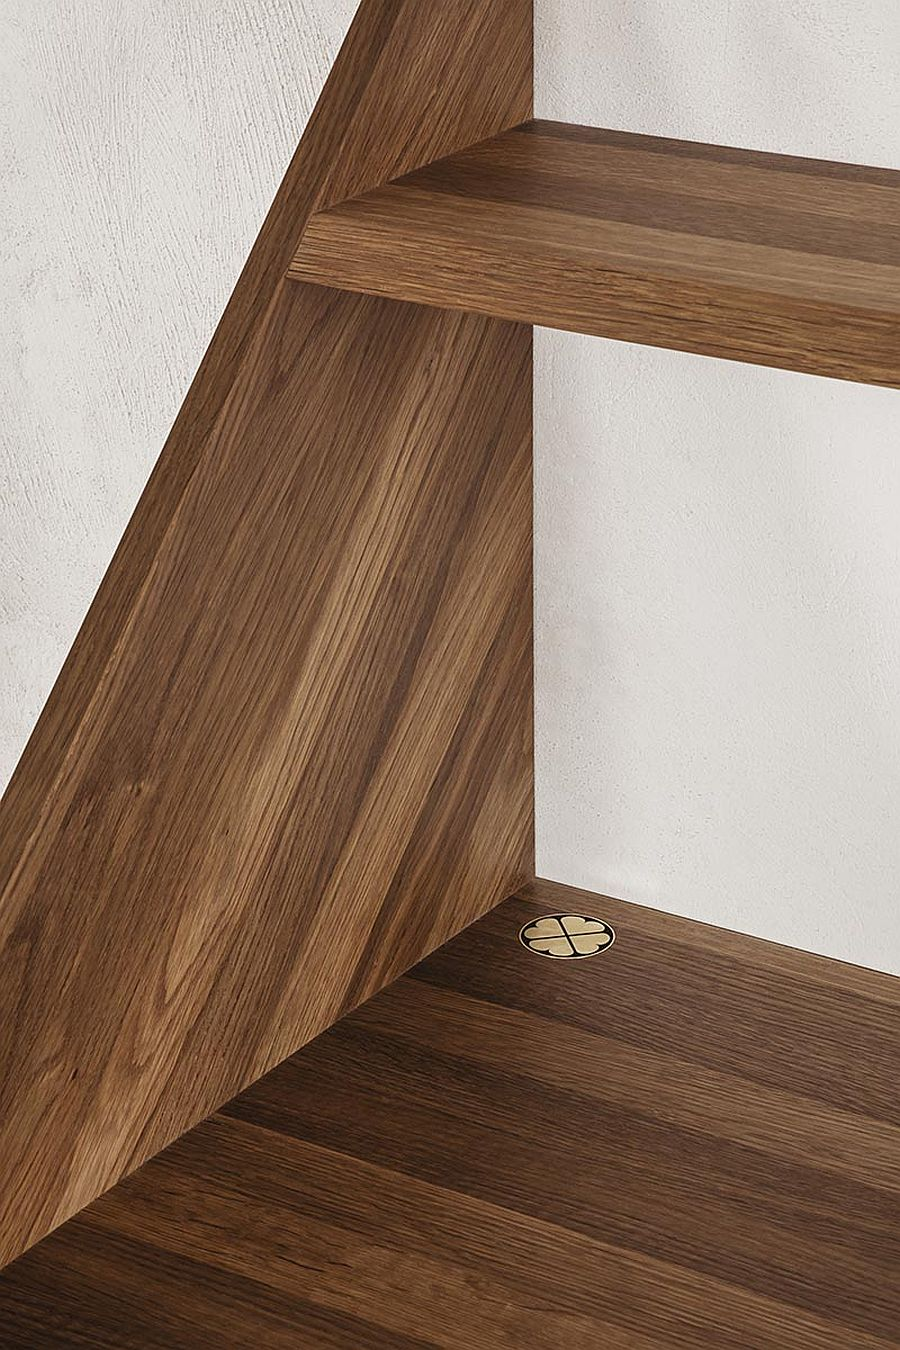 Closer-look-at-the-oak-finish-of-the-wall-mounted-XLIBRIS-desk-19157